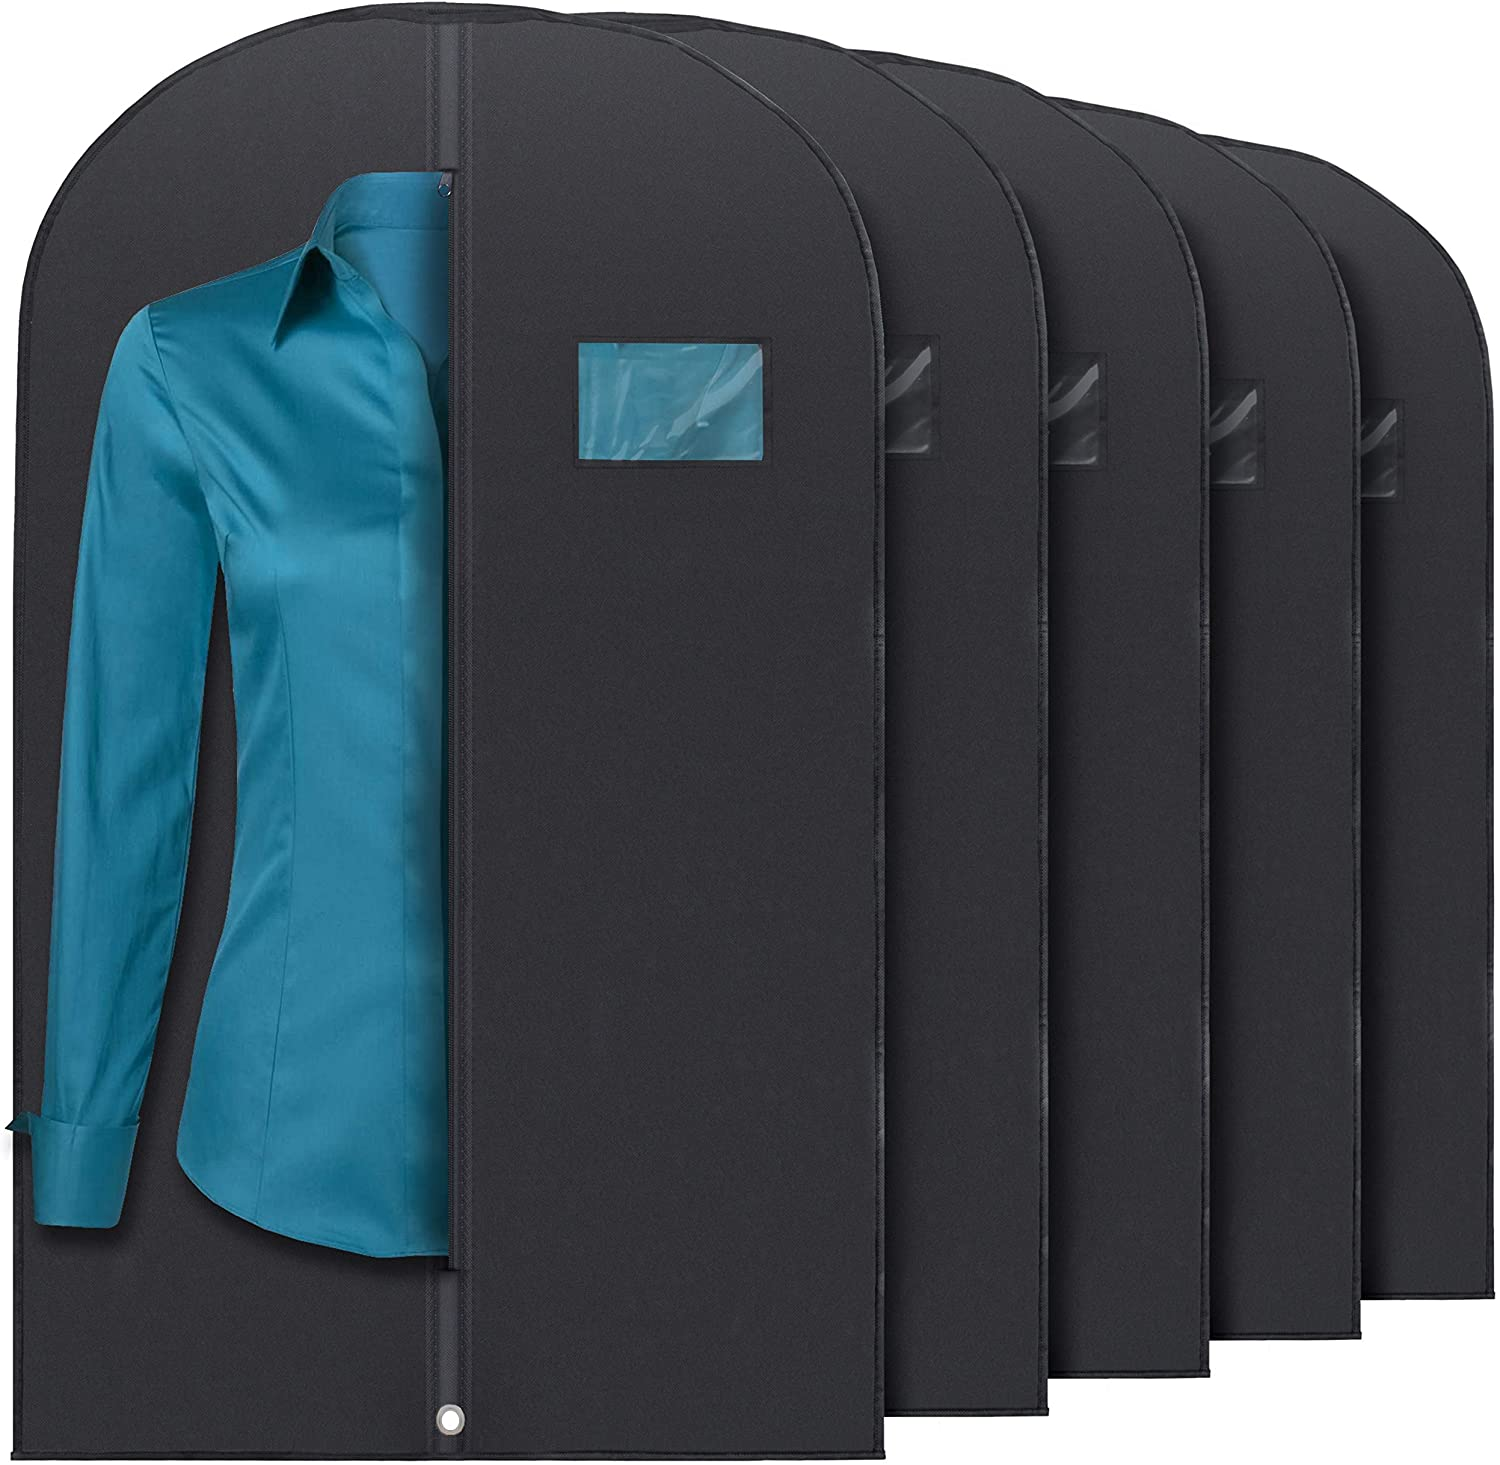 """Plixio Garment Bags Suit Bag for Travel and Clothing Storage of Dresses, Dress Shirts, Coats— Includes Zipper and Transparent Window (Black- 5 Pack: 40""""): Home & Kitchen"""